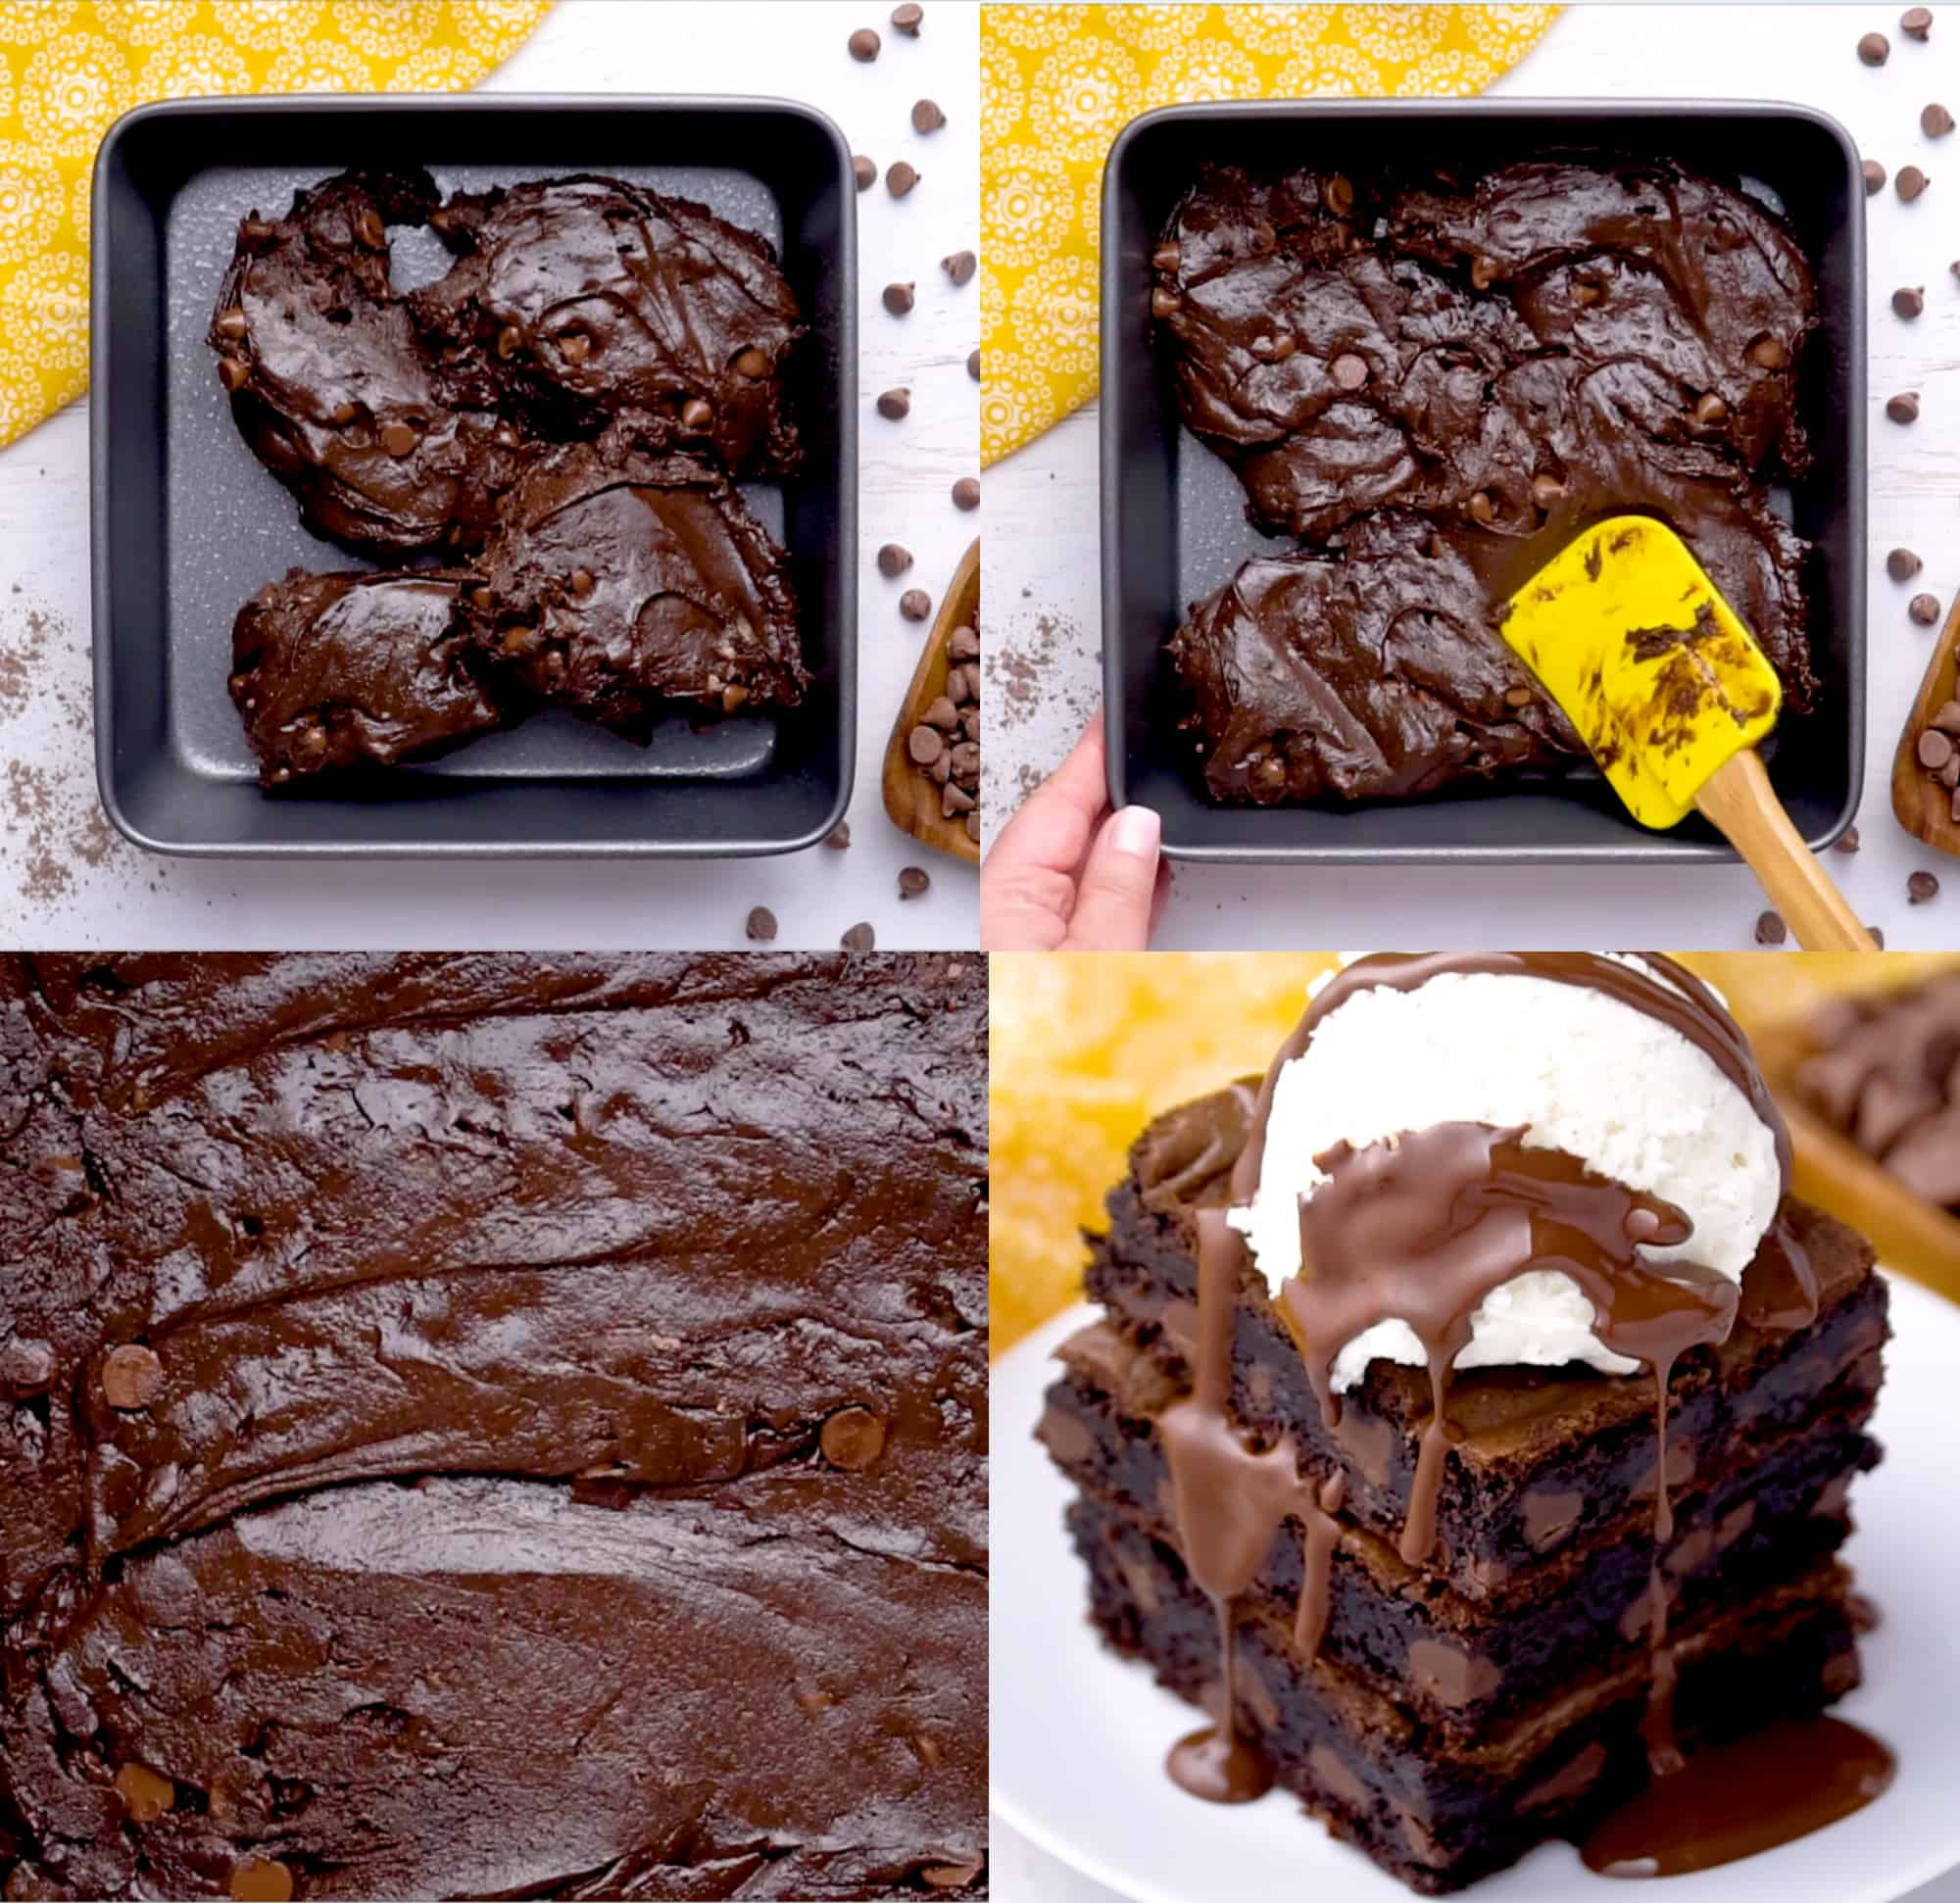 four images showing the spreading of the batter, and then the finished brownies with ice cream and fudge sauce on top